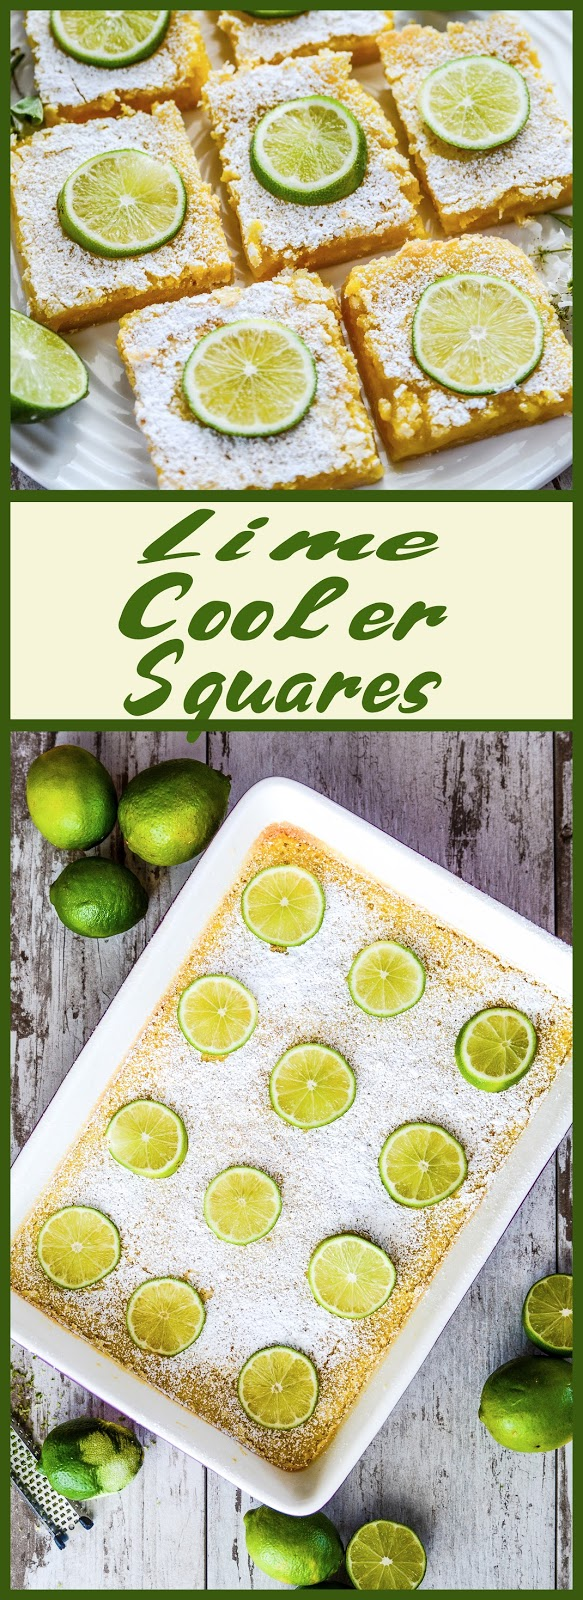 Lime Cooler Squares